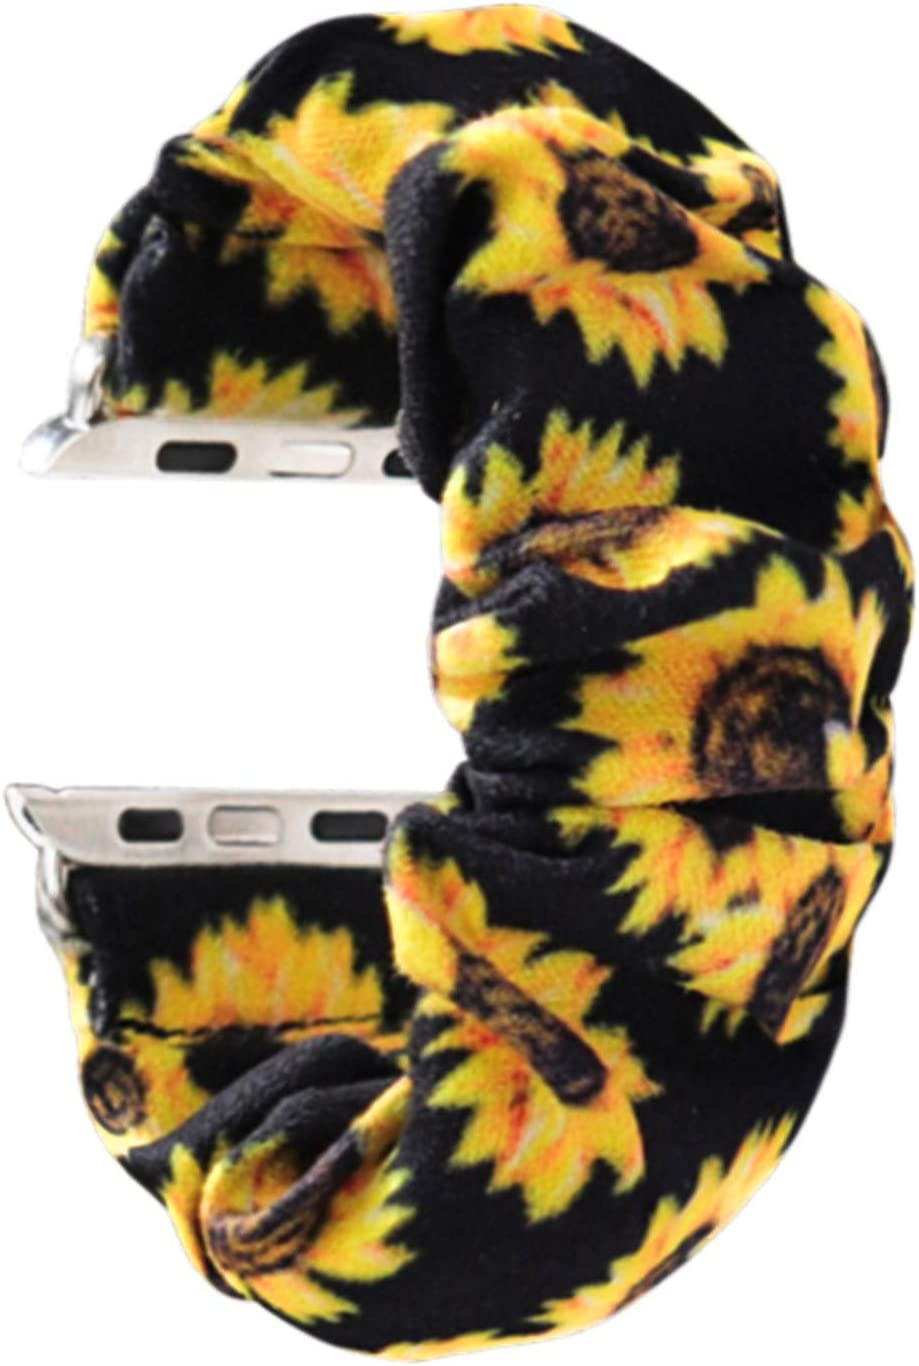 MONOBLANKS Scrunchie Elastic Watch Band Compatible for Apple Watch Band 38mm/40mm 42mm/44mm,Thick Elastic Band Replacement Compatible with for iWatch Series 4/3/2/1 (Sunflower, 38MM/40MM)